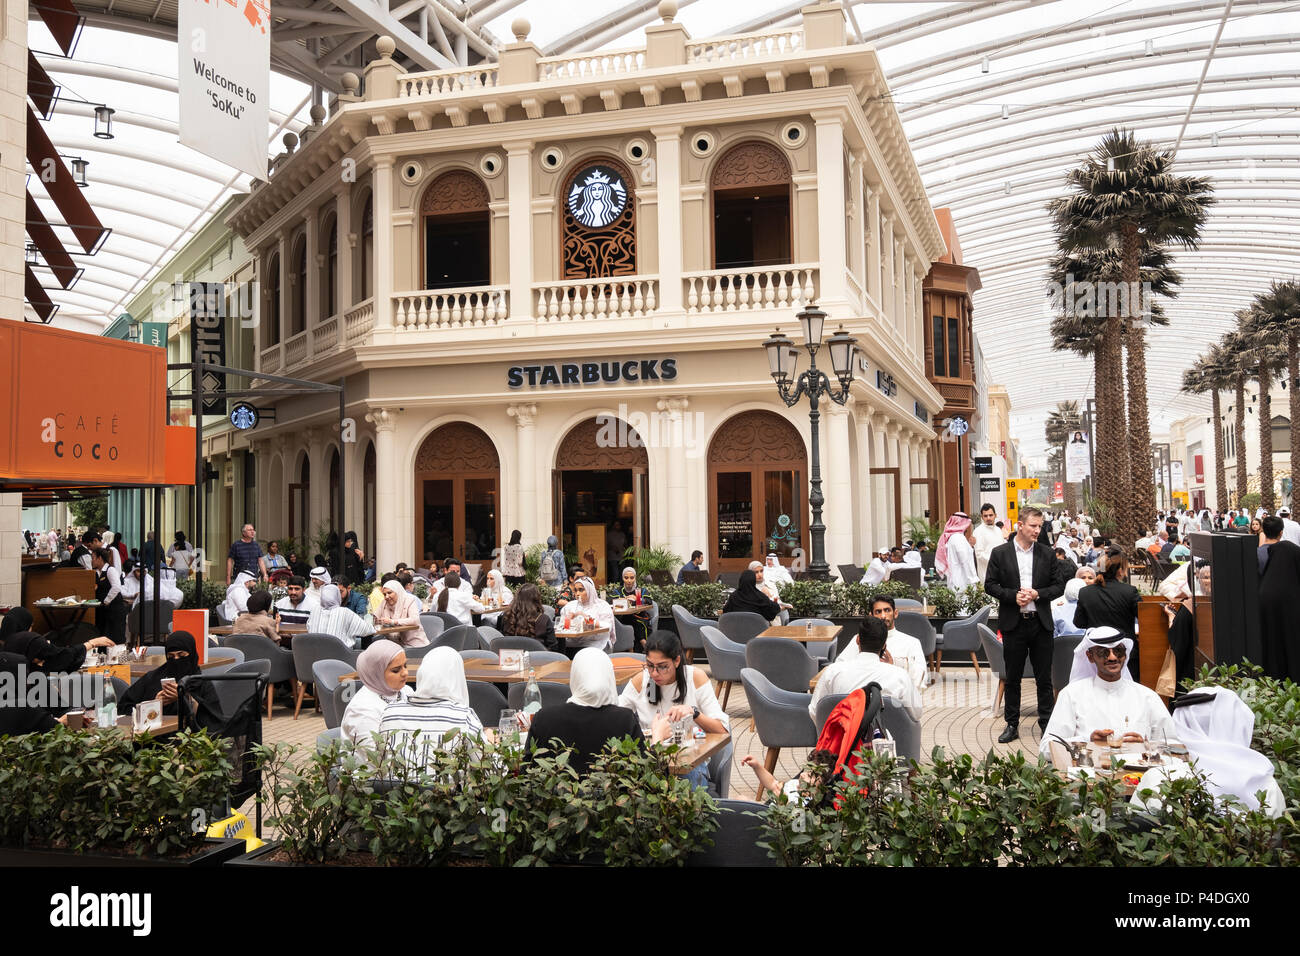 Starbucks store and cafe at The Avenues shopping mall in Kuwait City, Kuwait. Stock Photo